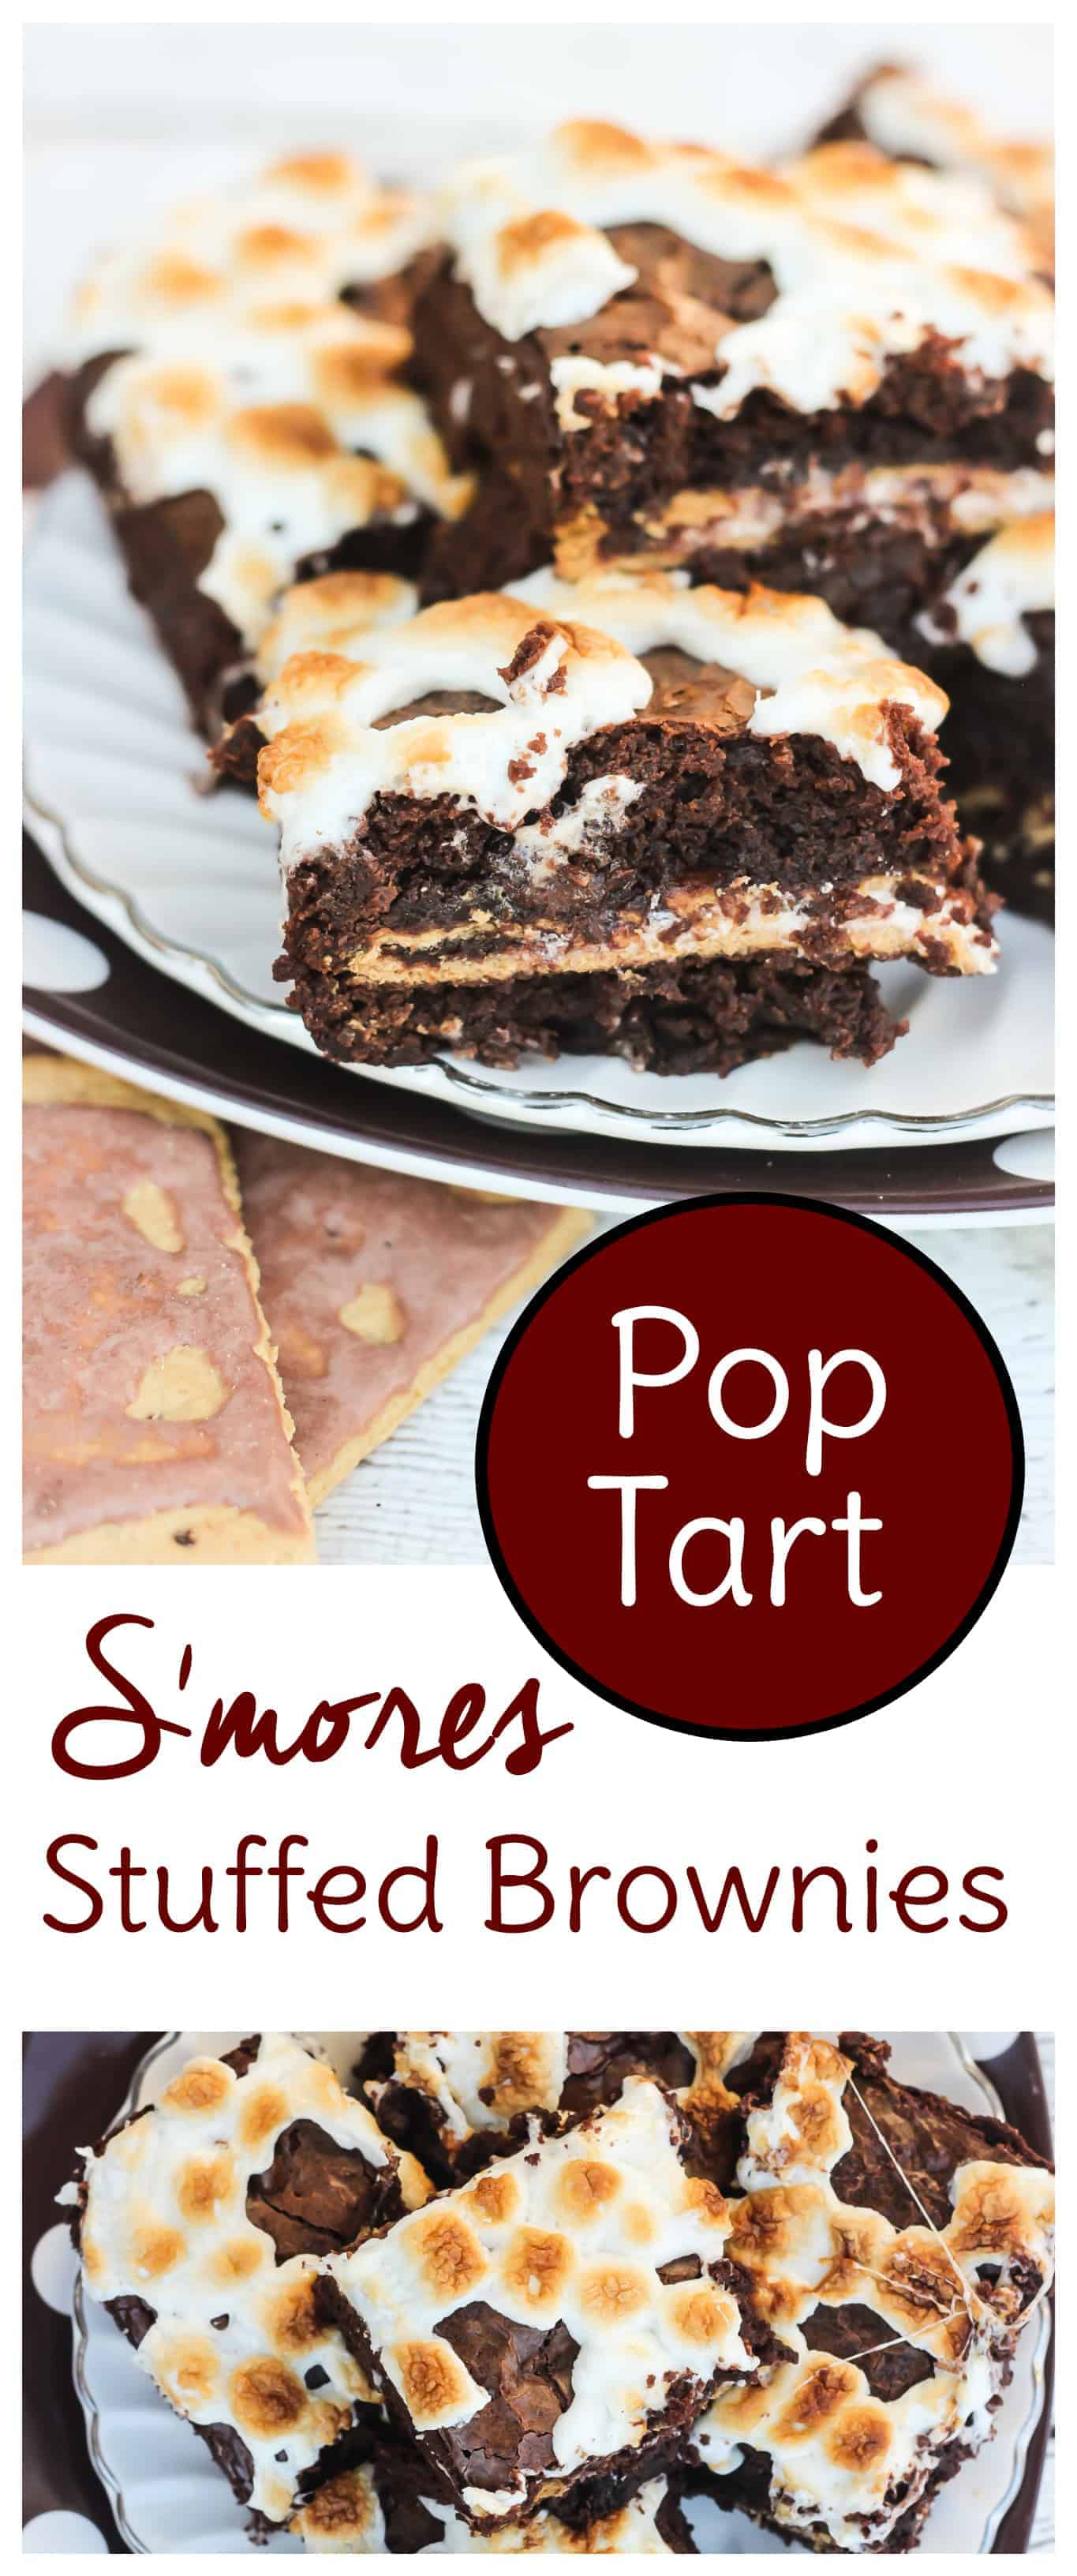 These S'mores Pop Tart Stuffed Brownies are a rich, decadent dessert recipe that's also incredibly easy to make. #smores #brownies #chocolate